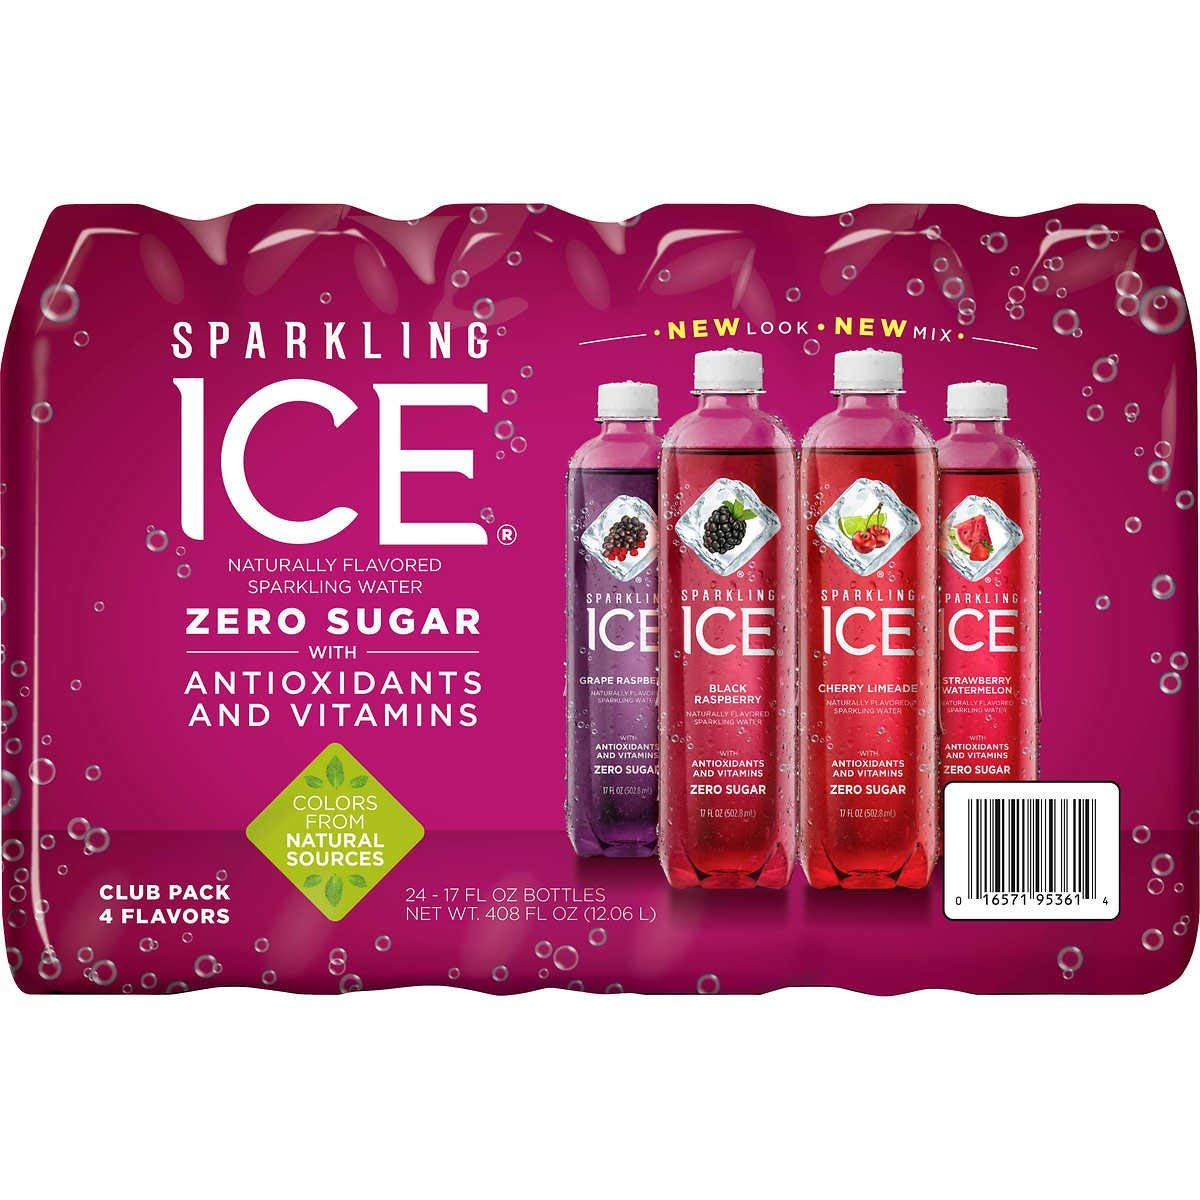 Sparkling Ice Very Berry Huge Variety Pack of 24 Bottles